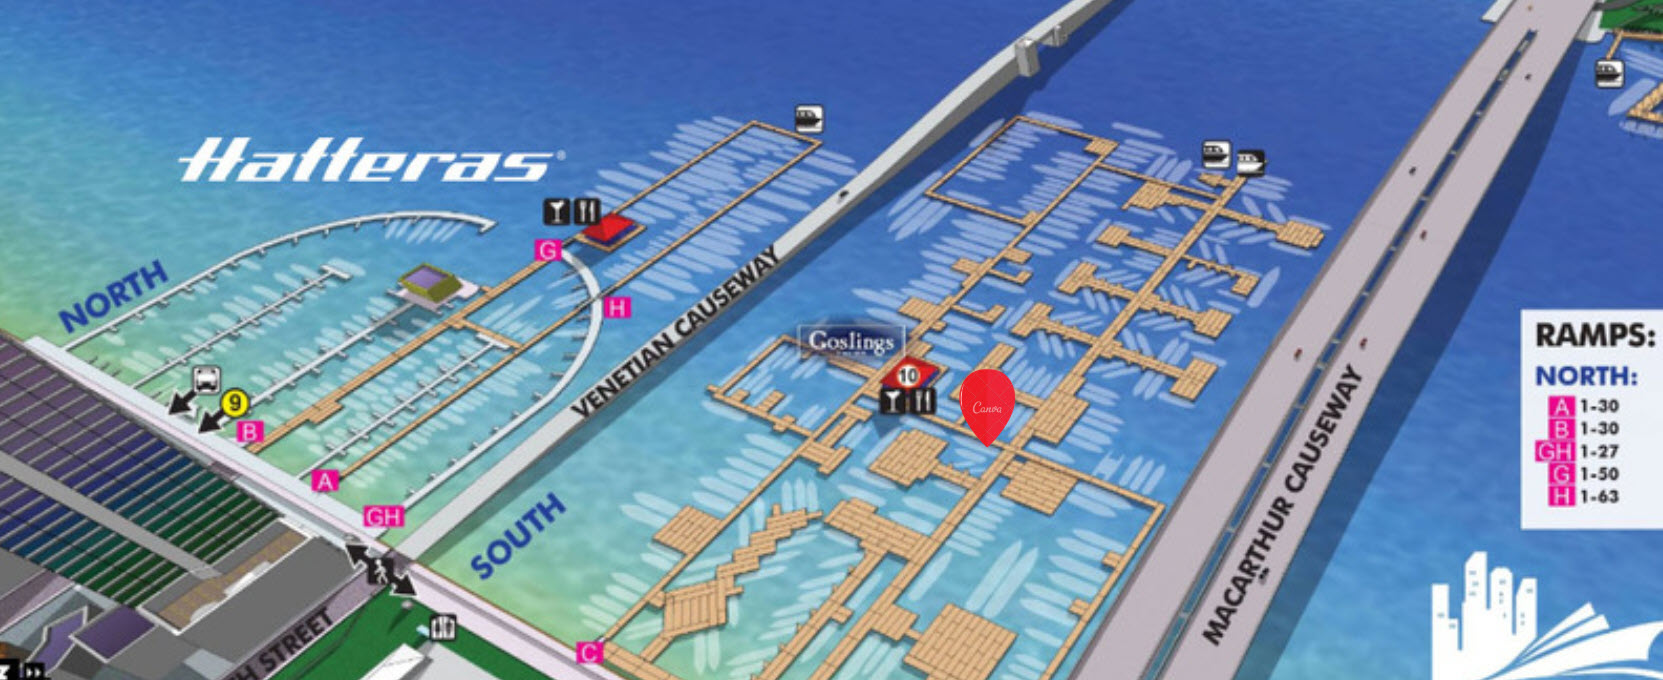 map of miami yacht show hatteras display